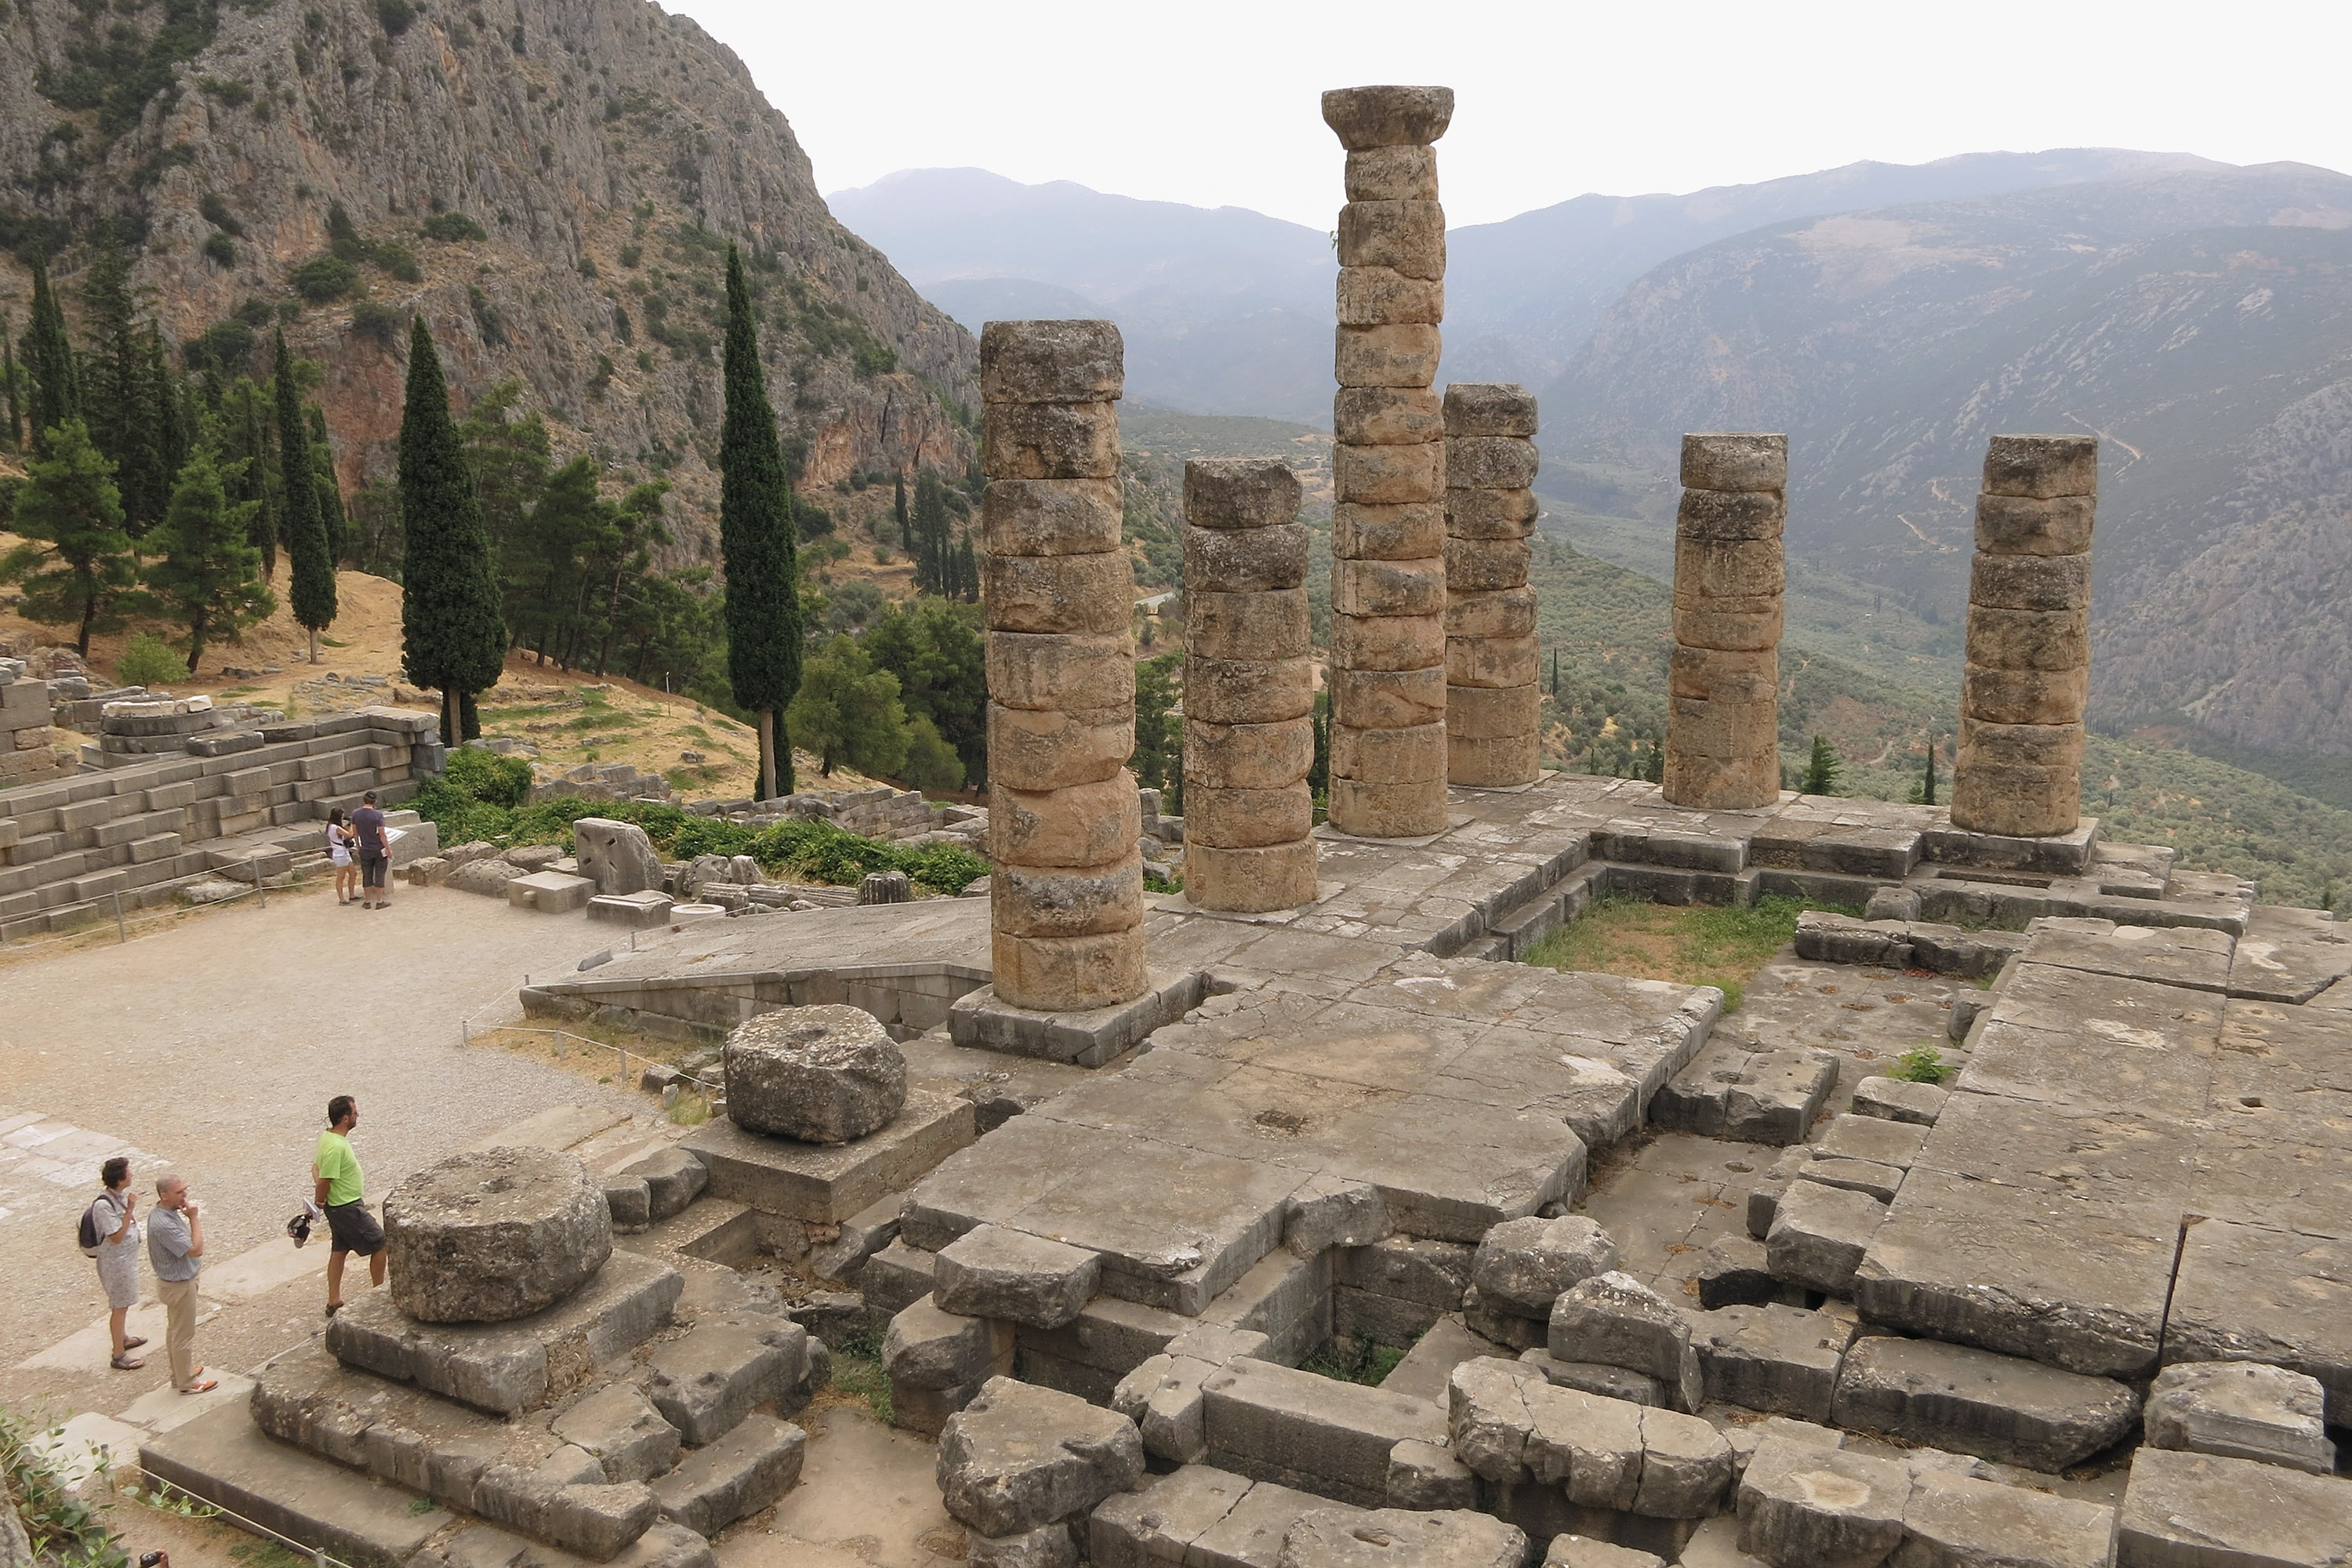 Visitors look at the former Palace of Apollo, where the oracle once prophesized the future, at the ancient archeological site of Delphi